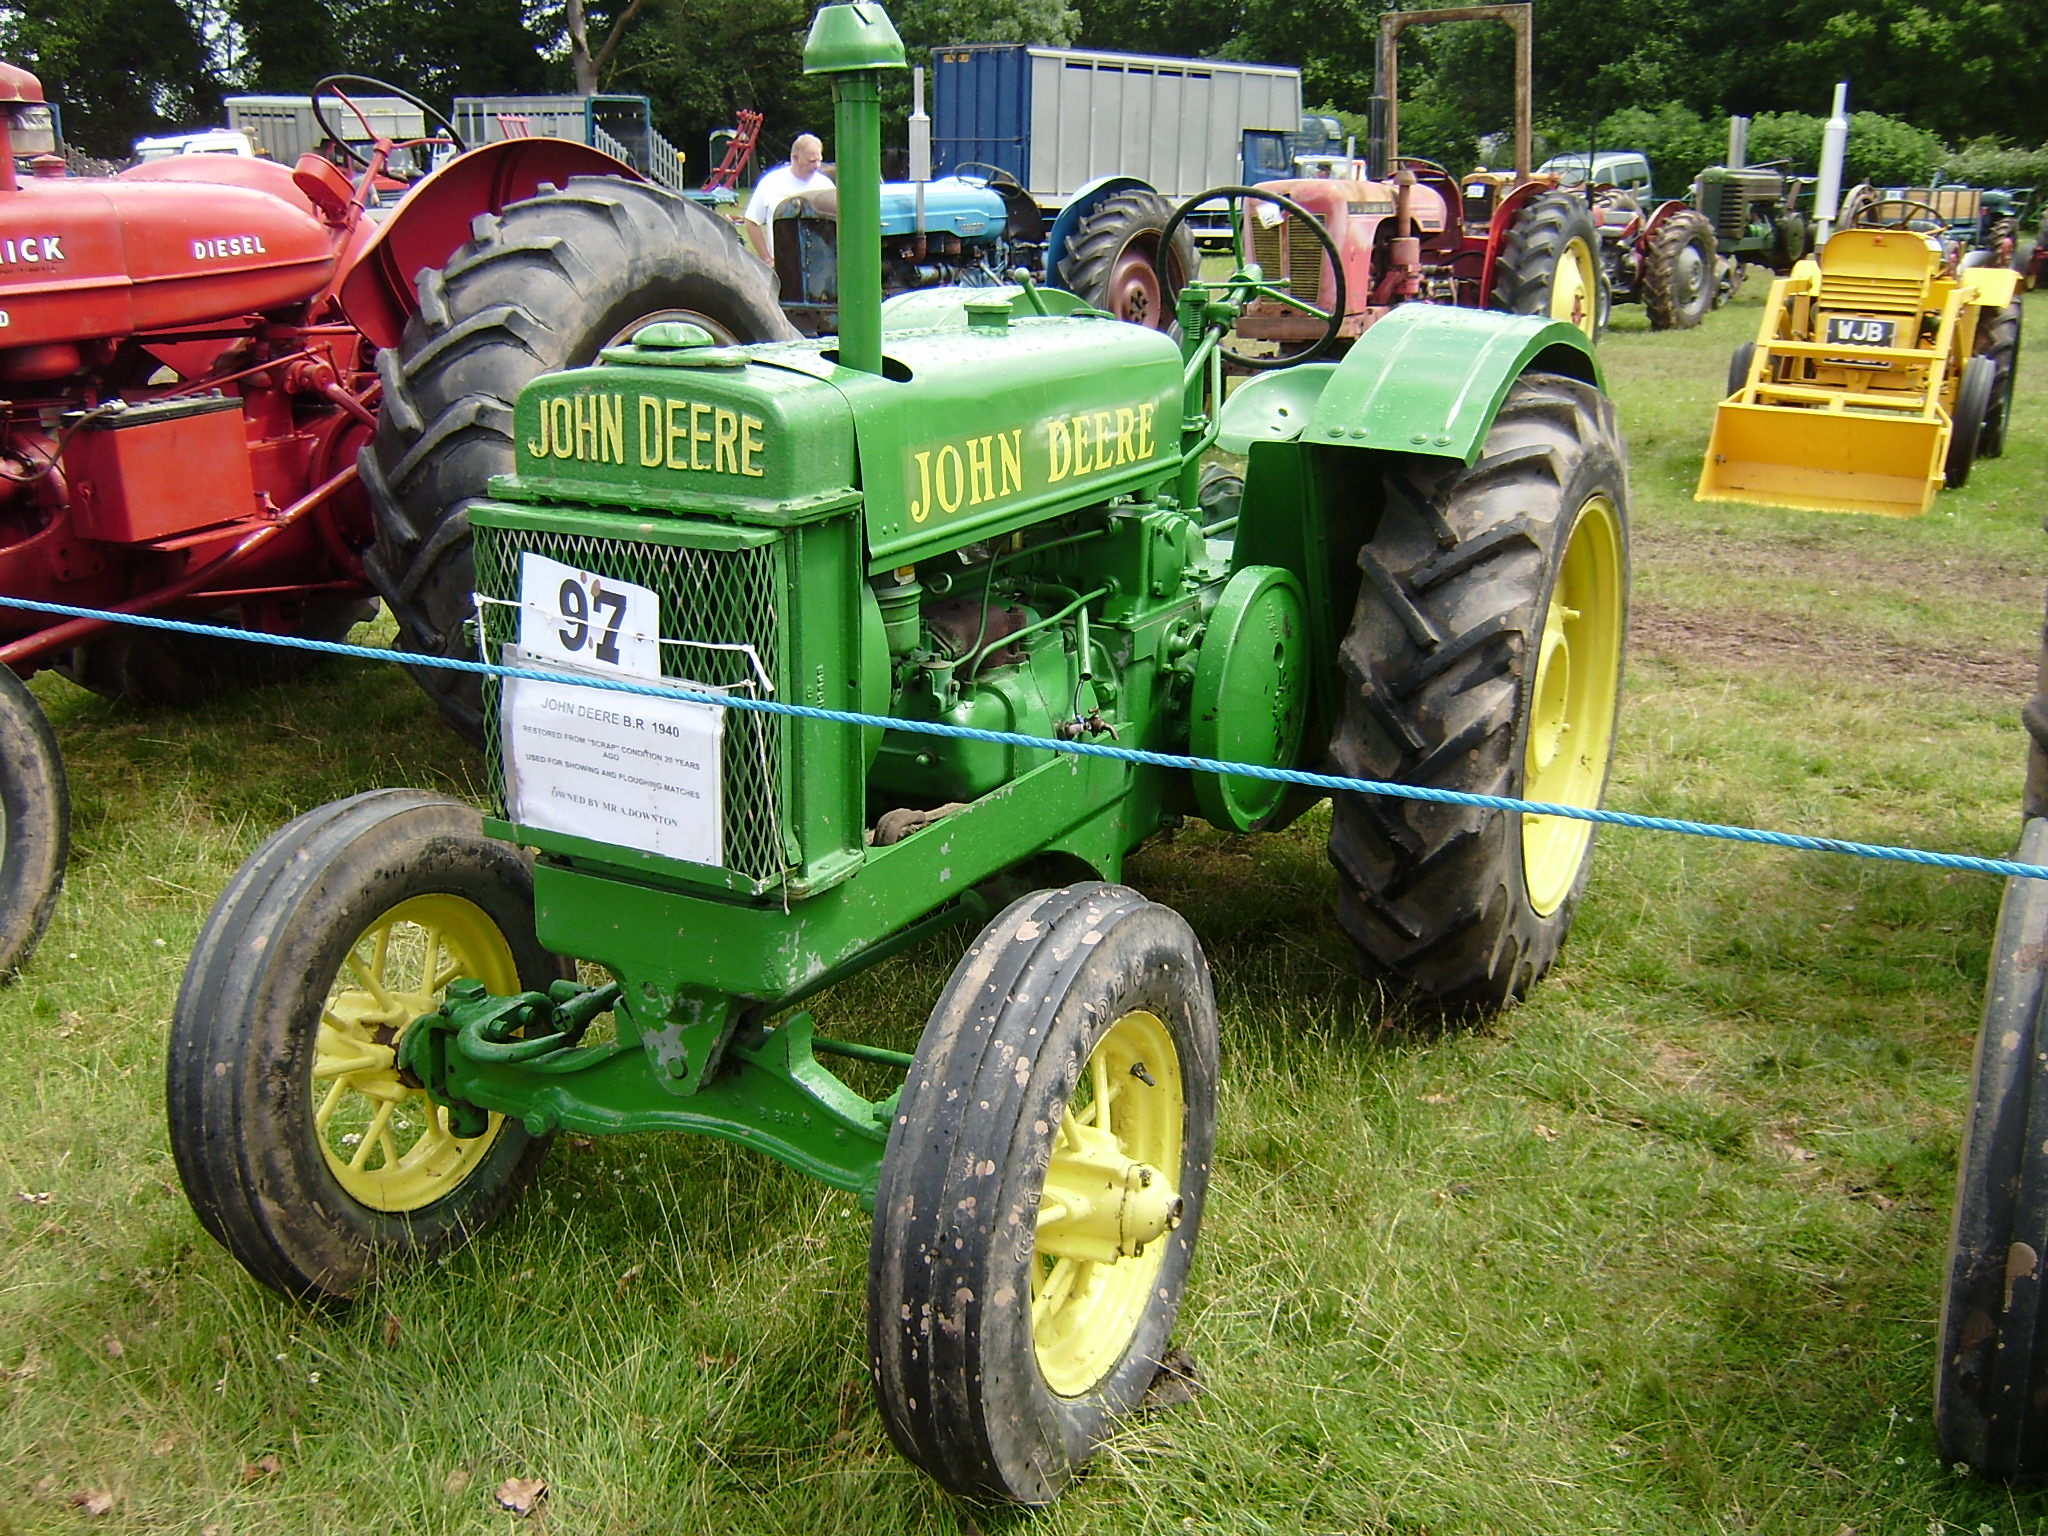 List Of John Deere Tractors Tractor Construction Plant Wiki Gt235 Wiring Diagram